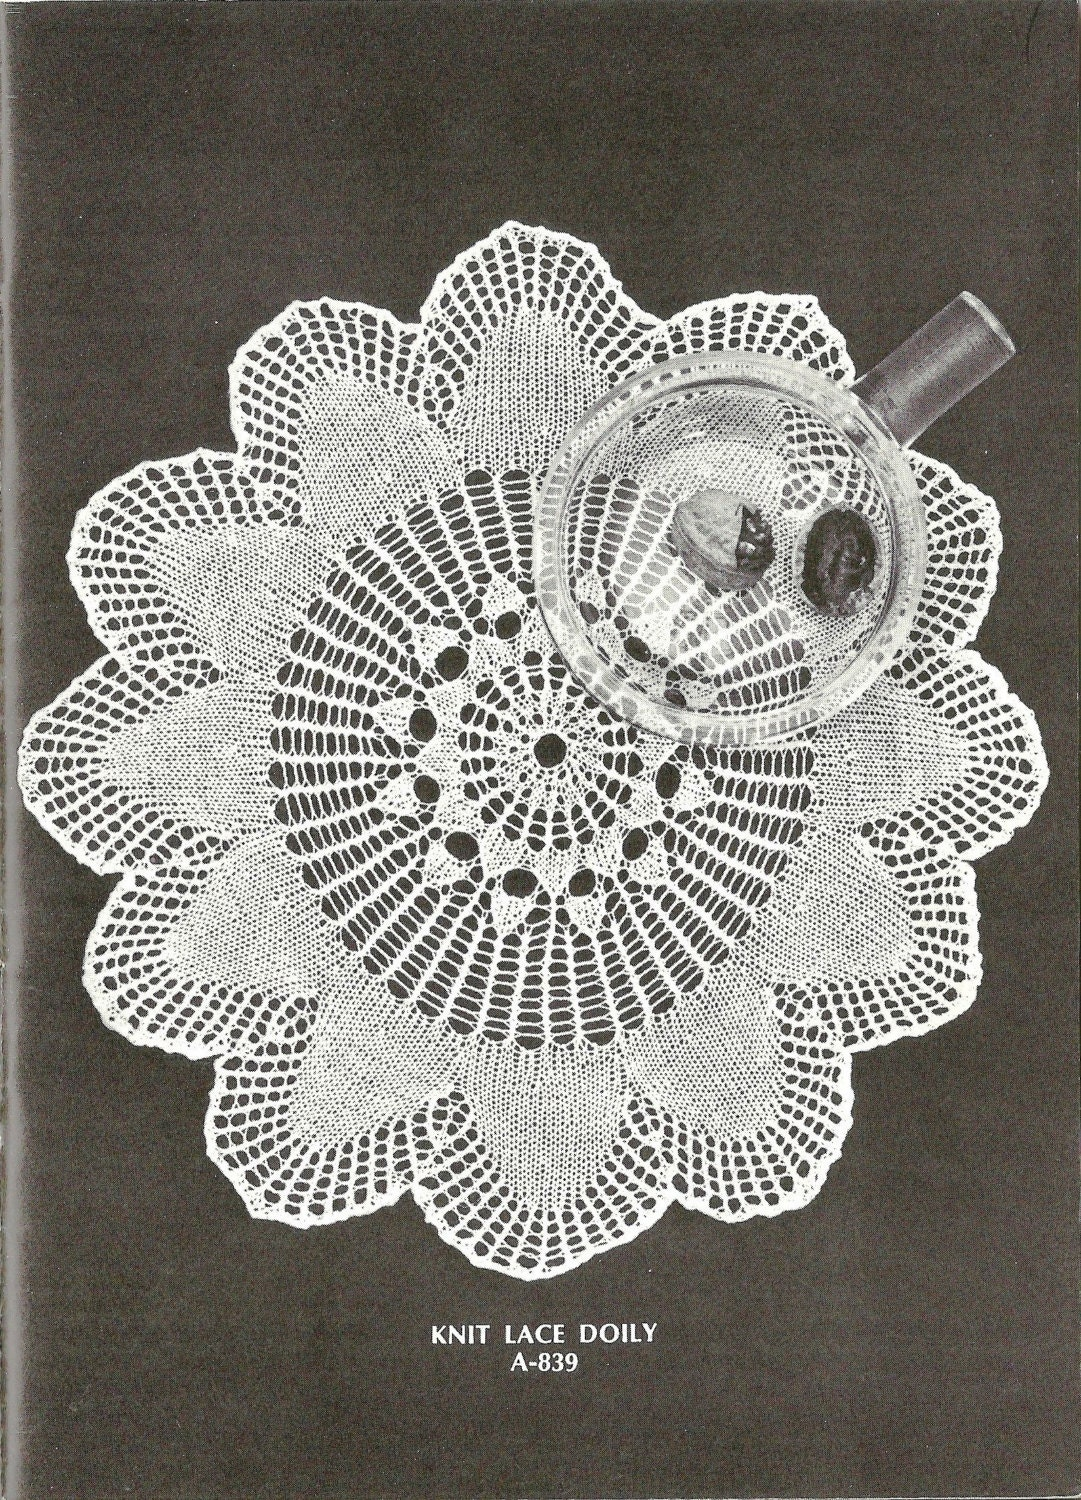 Vintage Knitting Pattern Lace Doily 1970s instant download